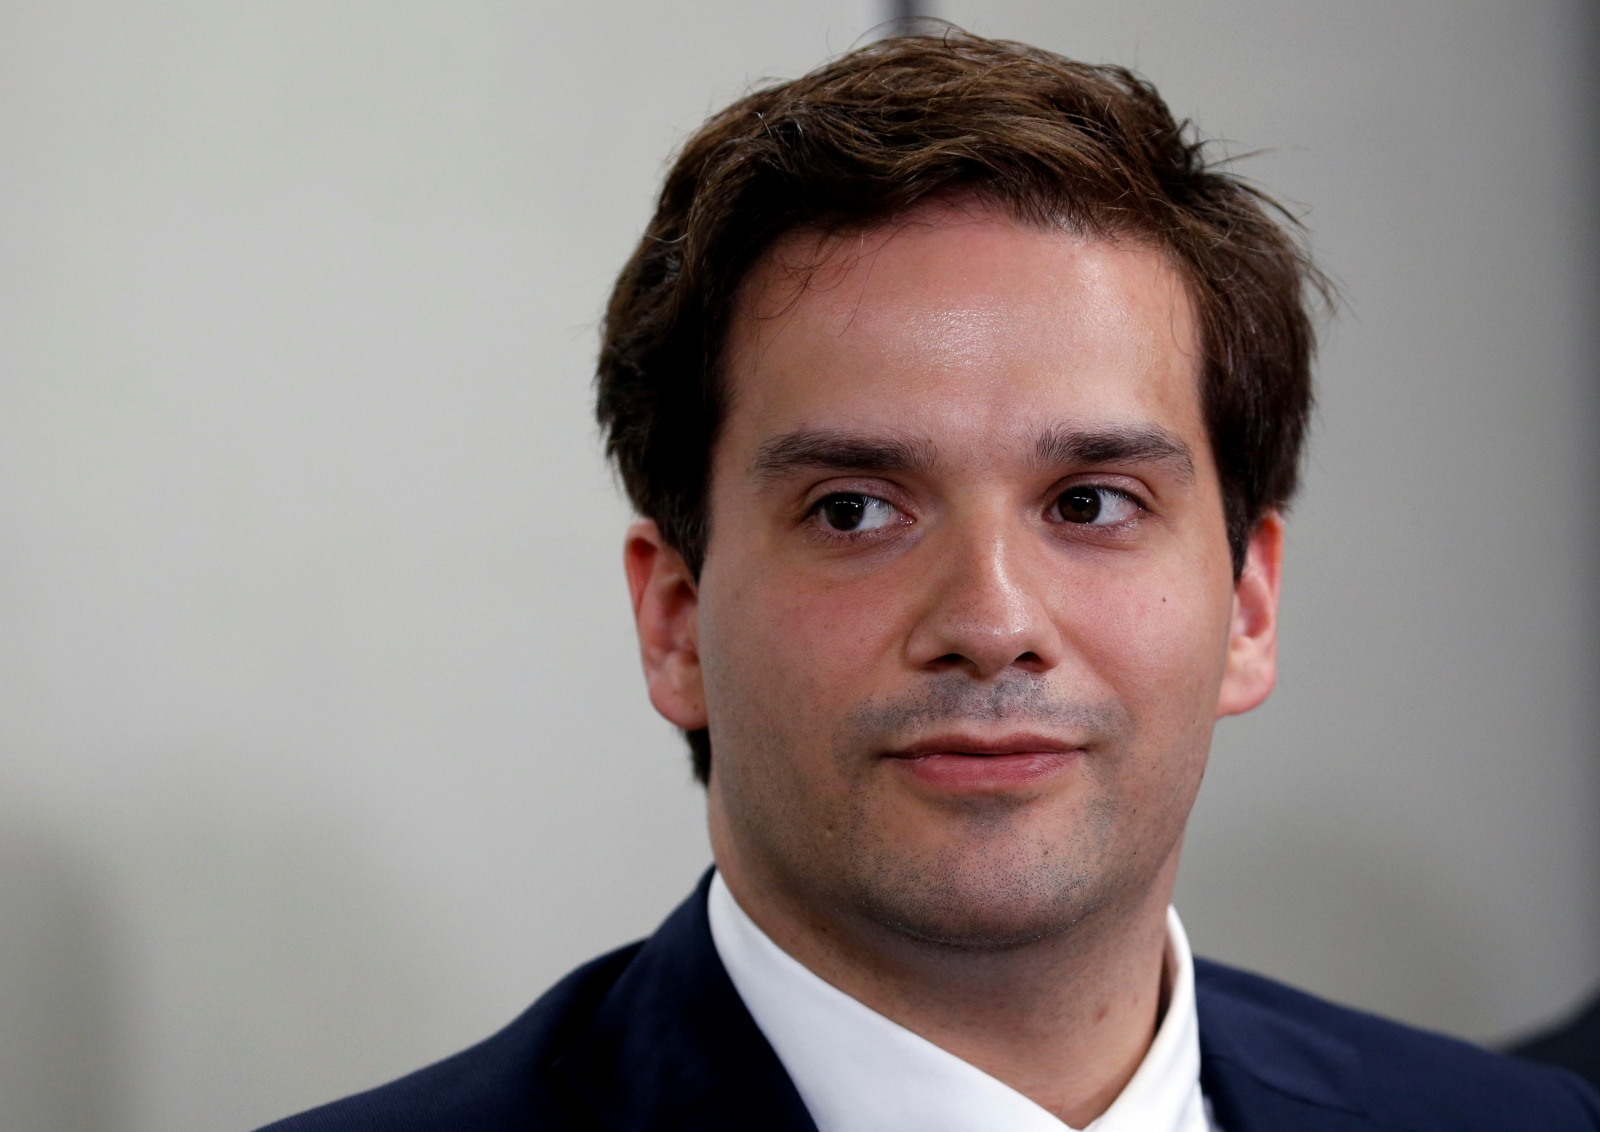 Mt Gox Mark Karpeles